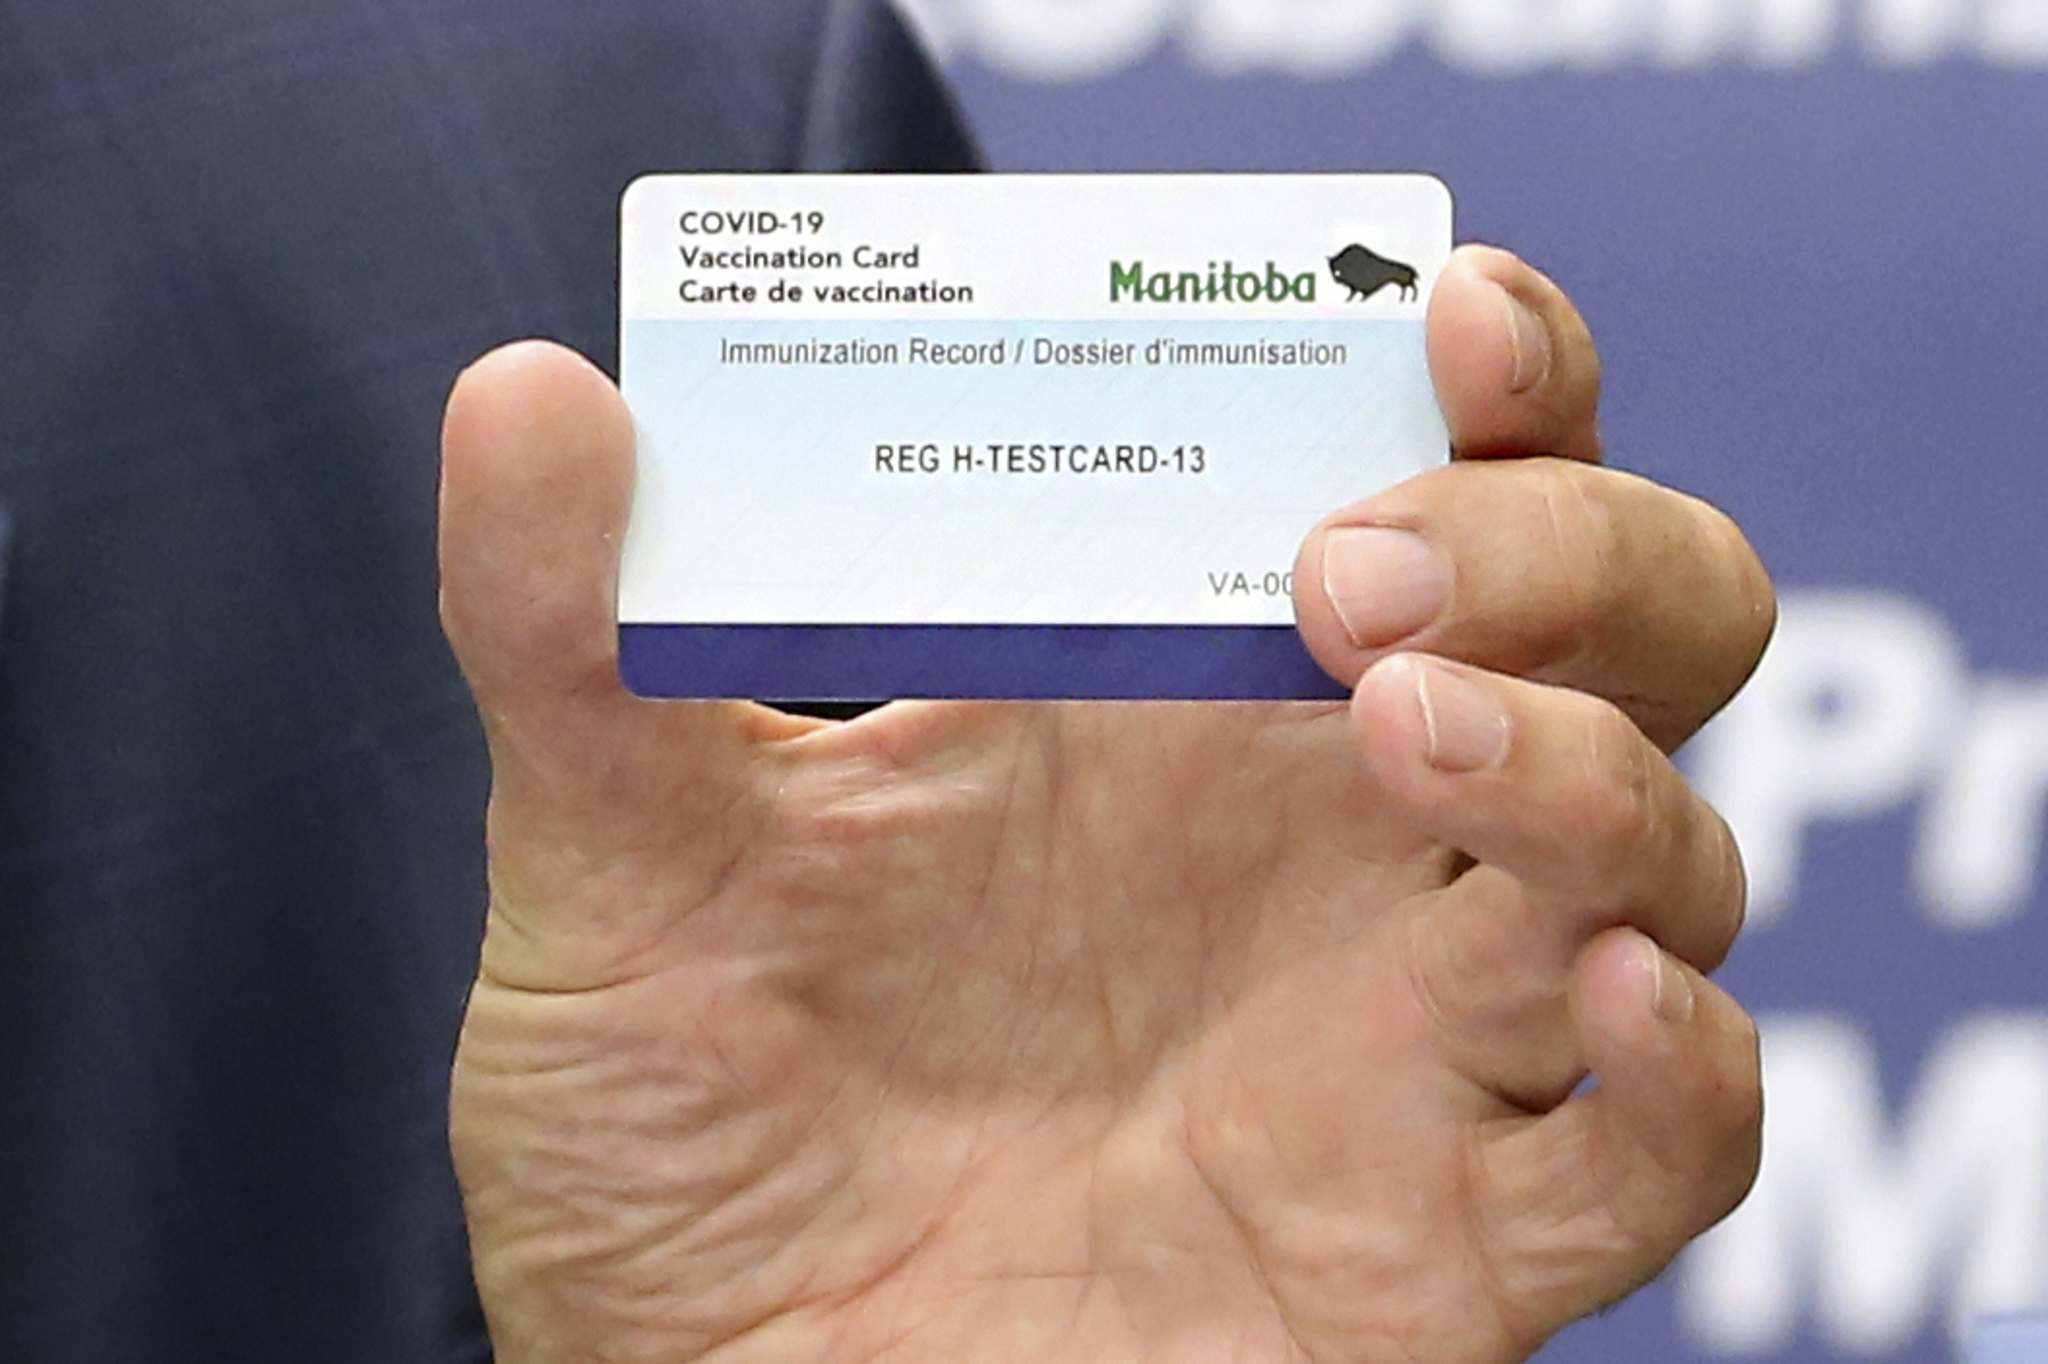 While the province is promoting the vaccination card and QR system for Manitobans, cross-border travel could be impacted if residents try to use this system to re-enter the province from the U.S. (Submitted)